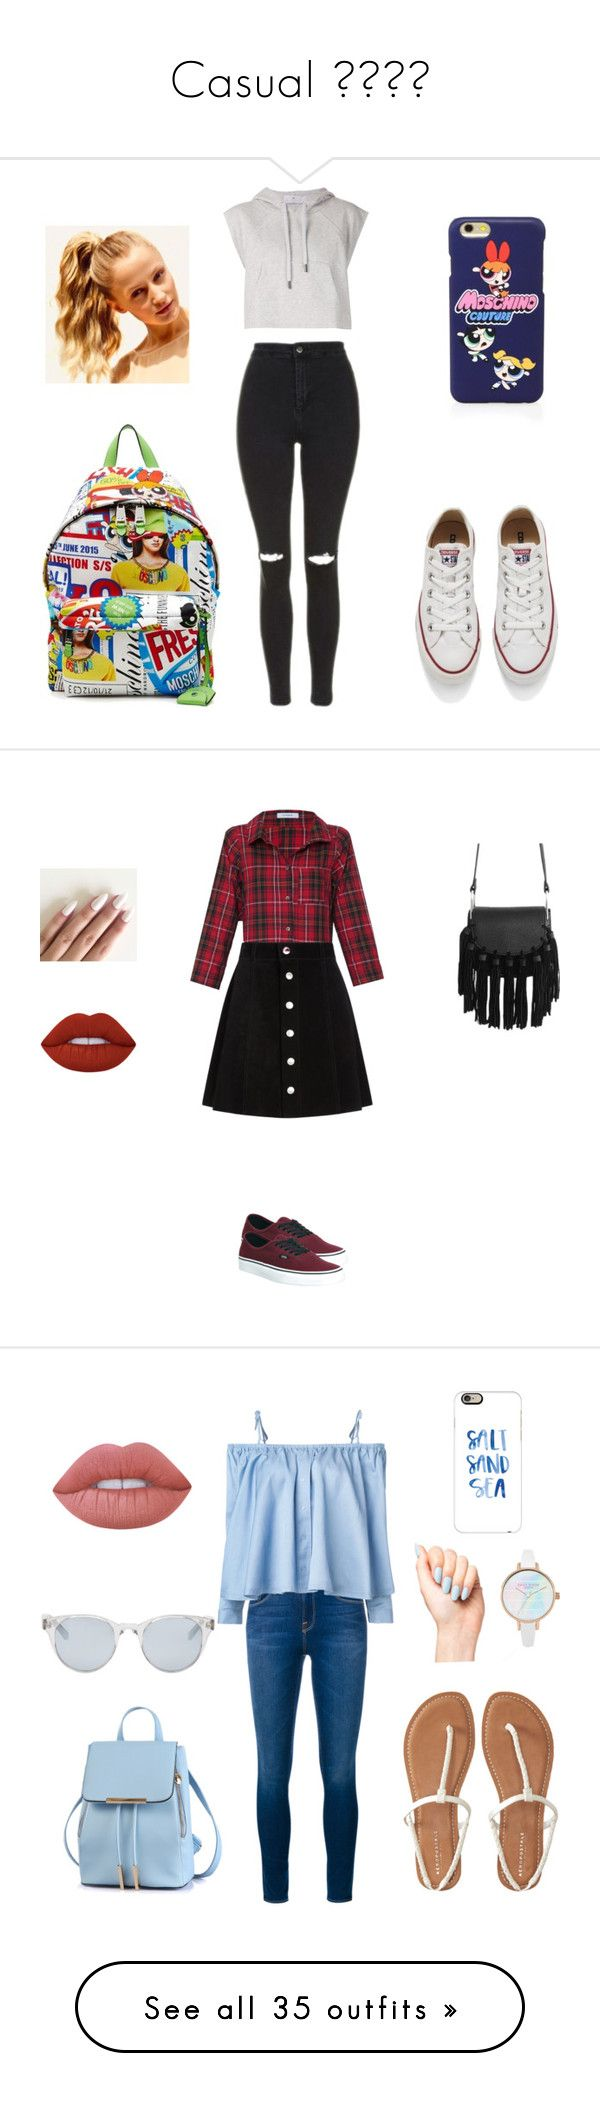 """Casual ✌️"" by cami02 ❤ liked on Polyvore featuring adidas, Topshop, Converse, Moschino, Hershesons, Vitamin, AG Adriano Goldschmied, Vans, Lime Crime and Frame Denim"